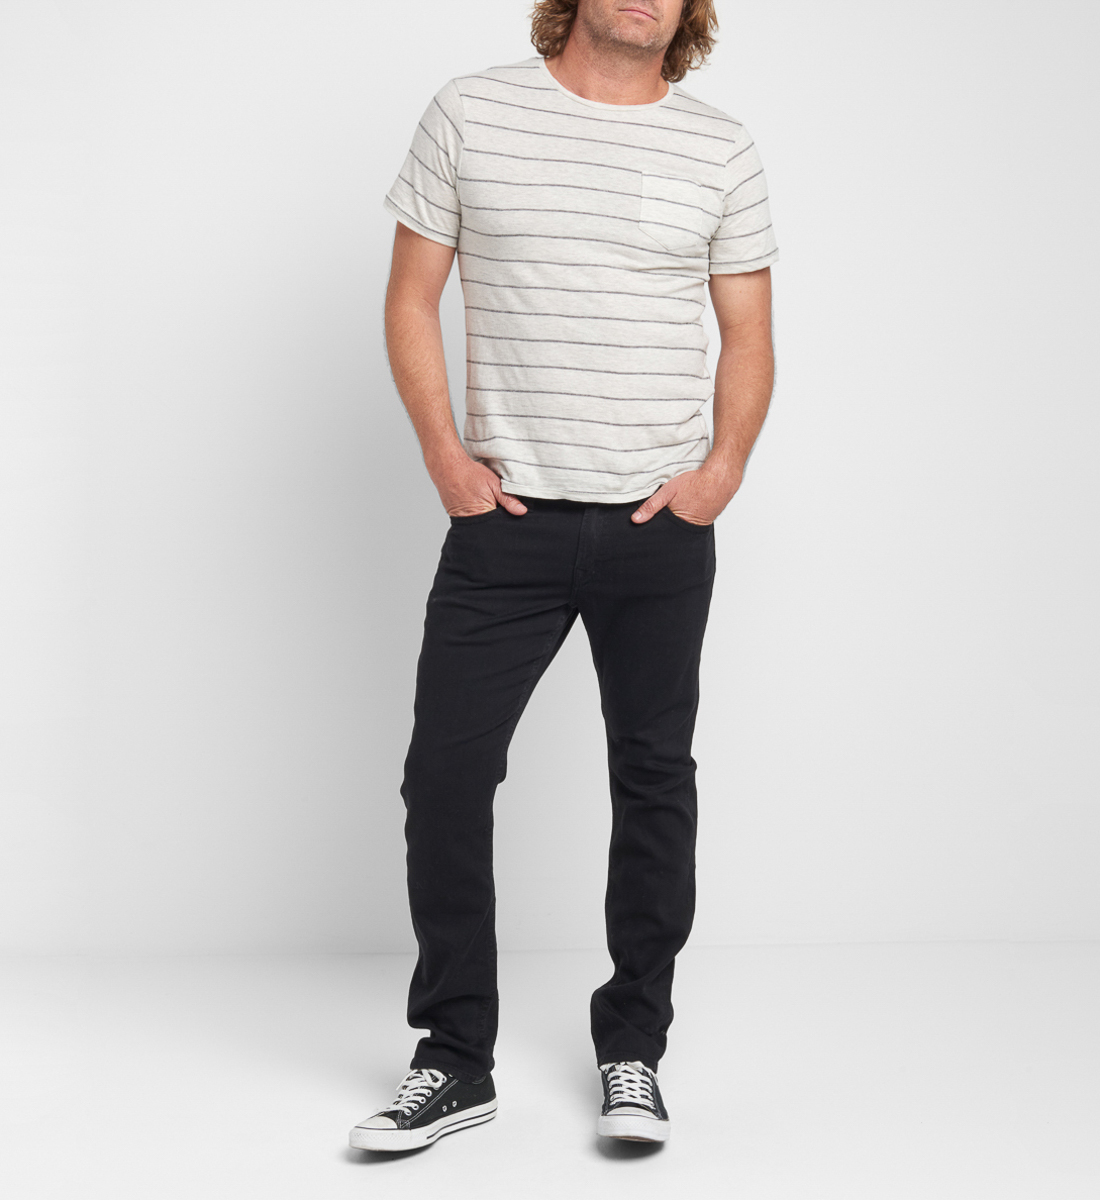 Brody Short-Sleeve Tee Front